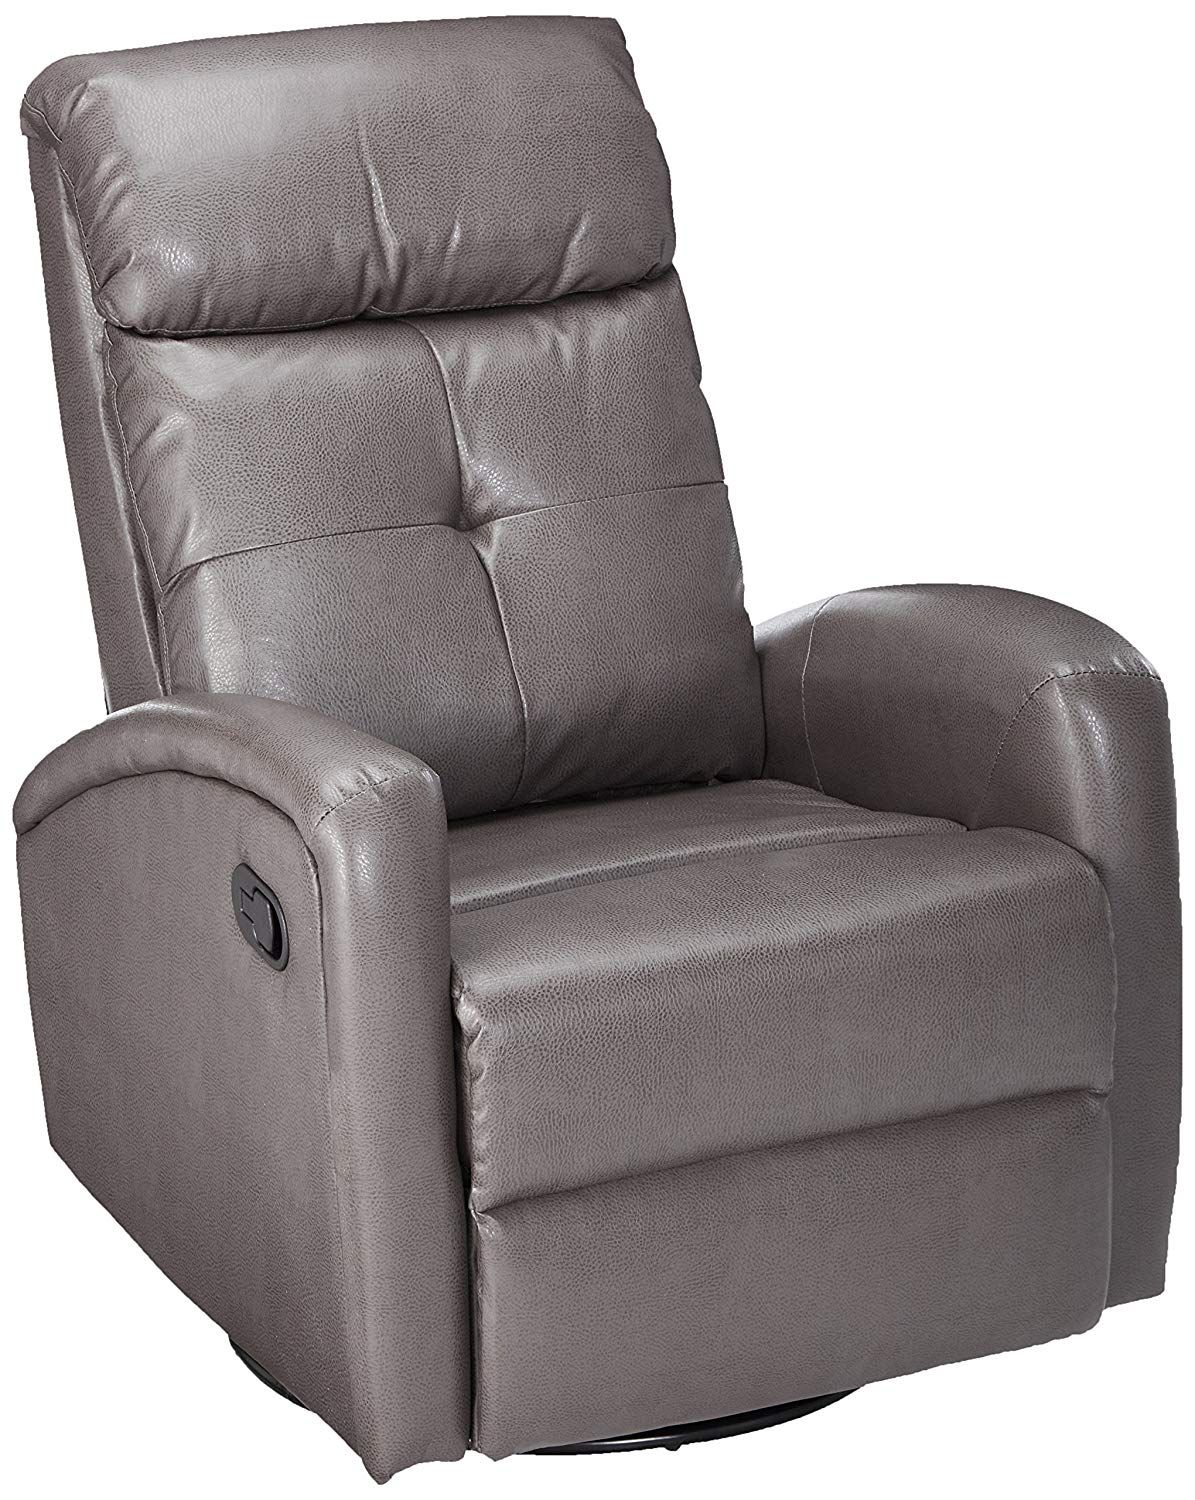 Monarch I 8088Gy Swivel Glider Recliner, Charcoal Grey